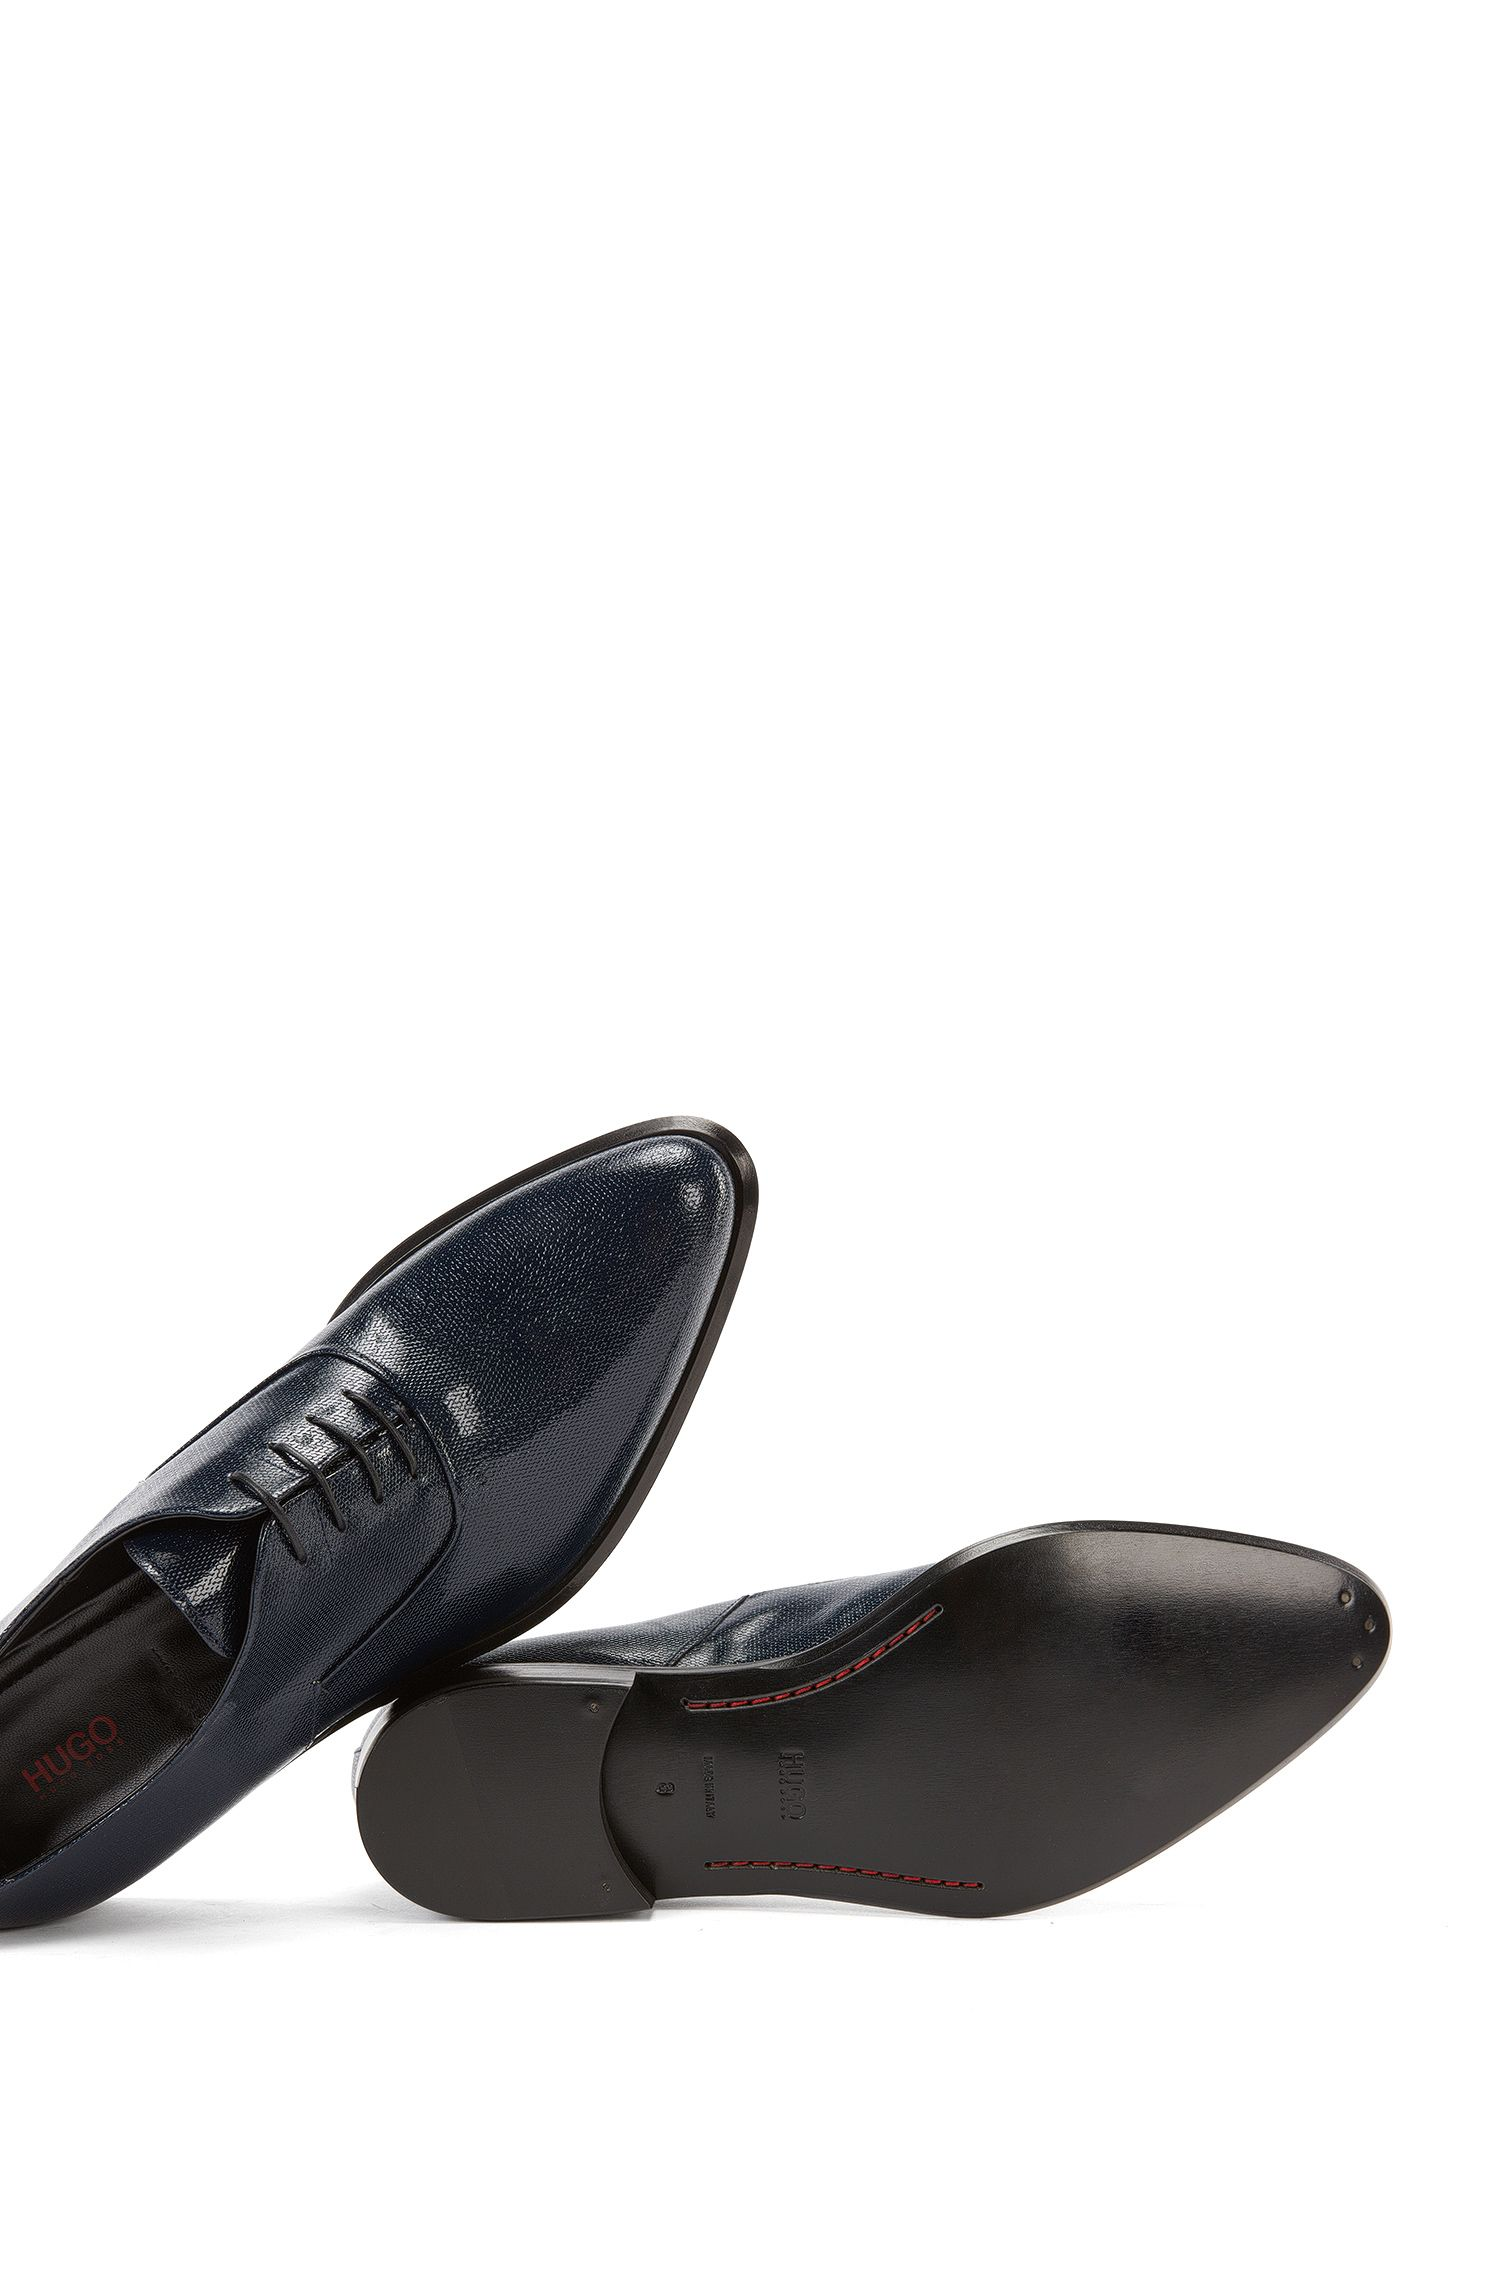 Embossed Leather Oxford Dress Shoe | Deluxe Oxfr Paper, Dark Blue